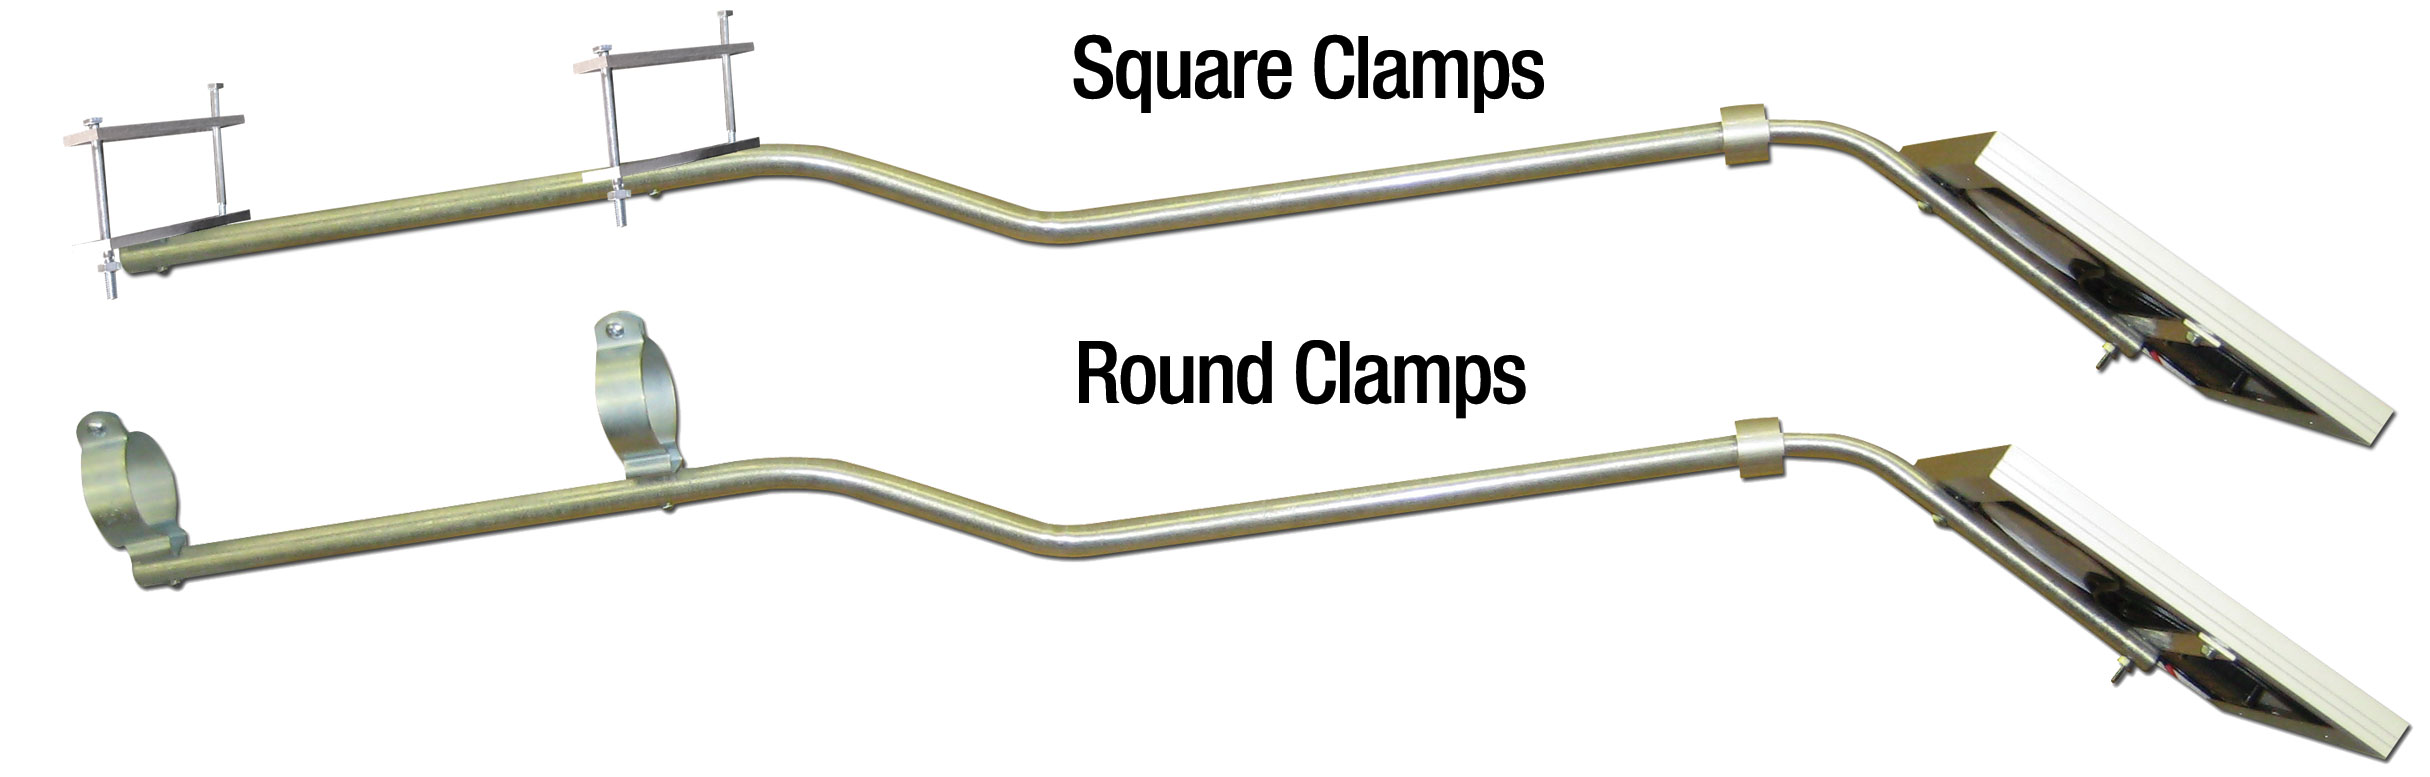 sp-clamps